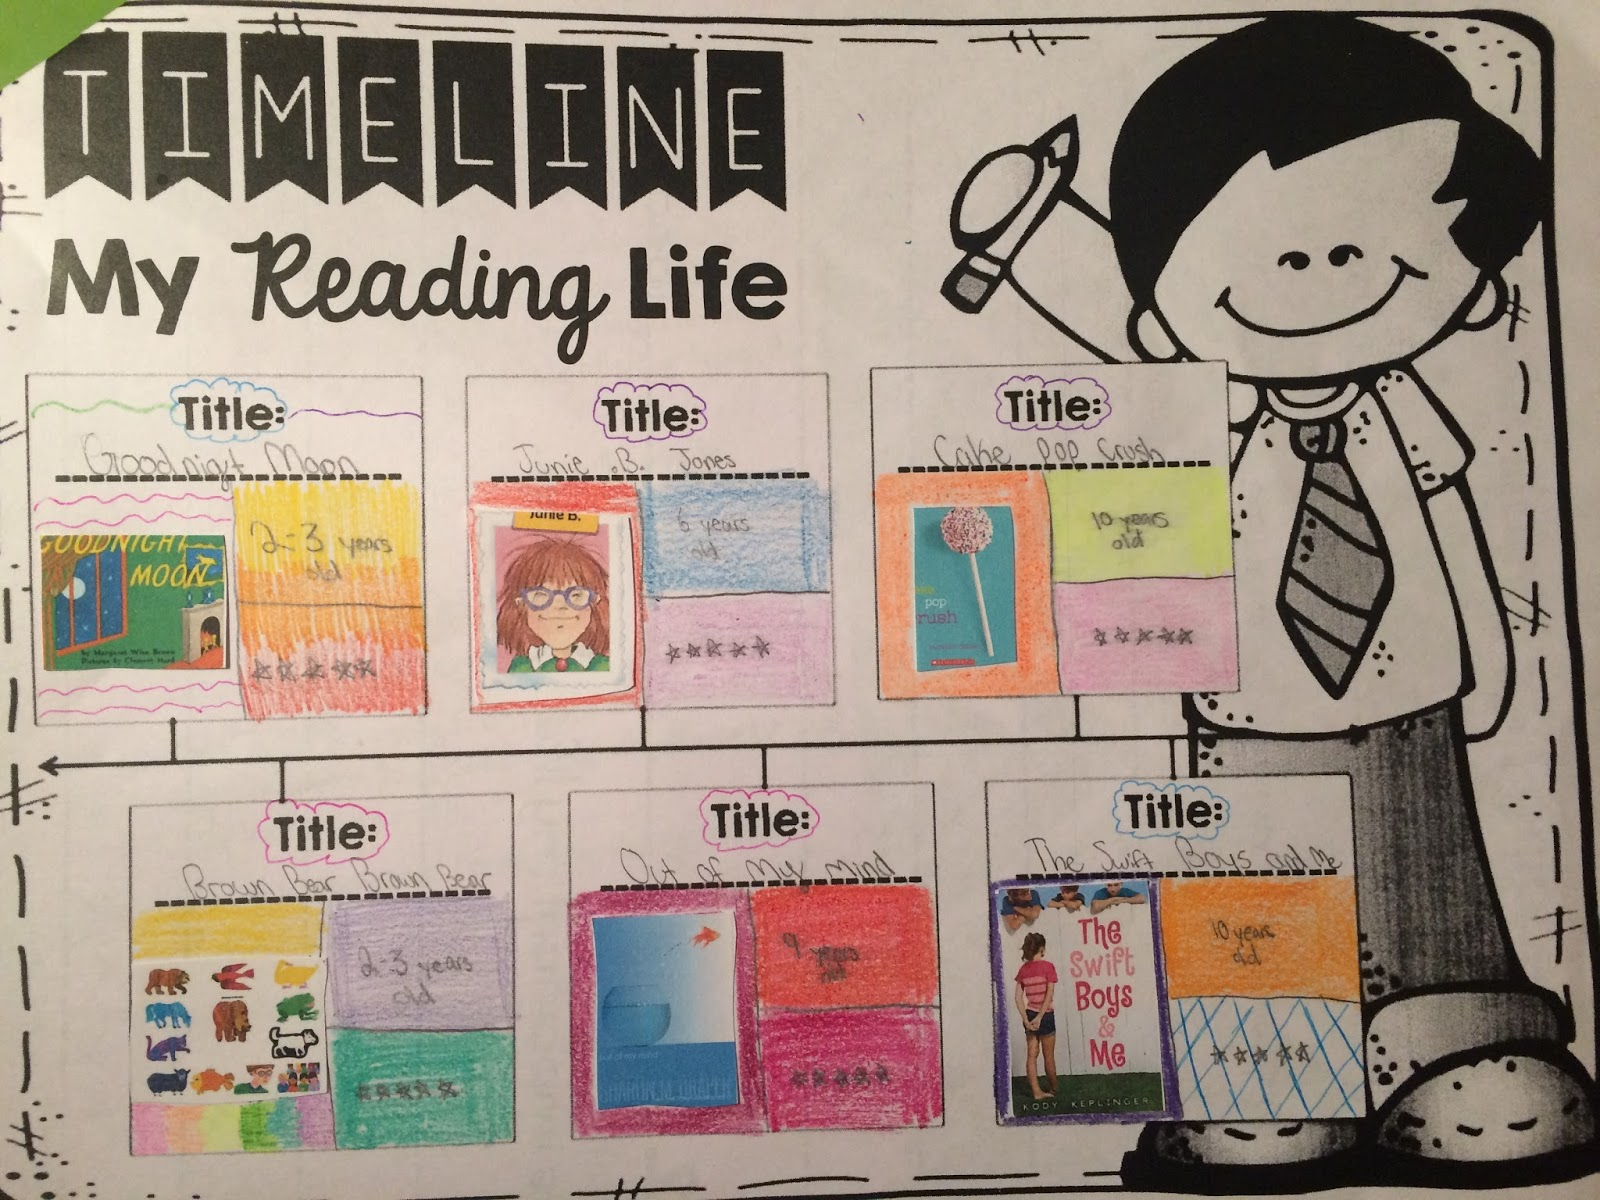 Reading Life Timeline Assignment